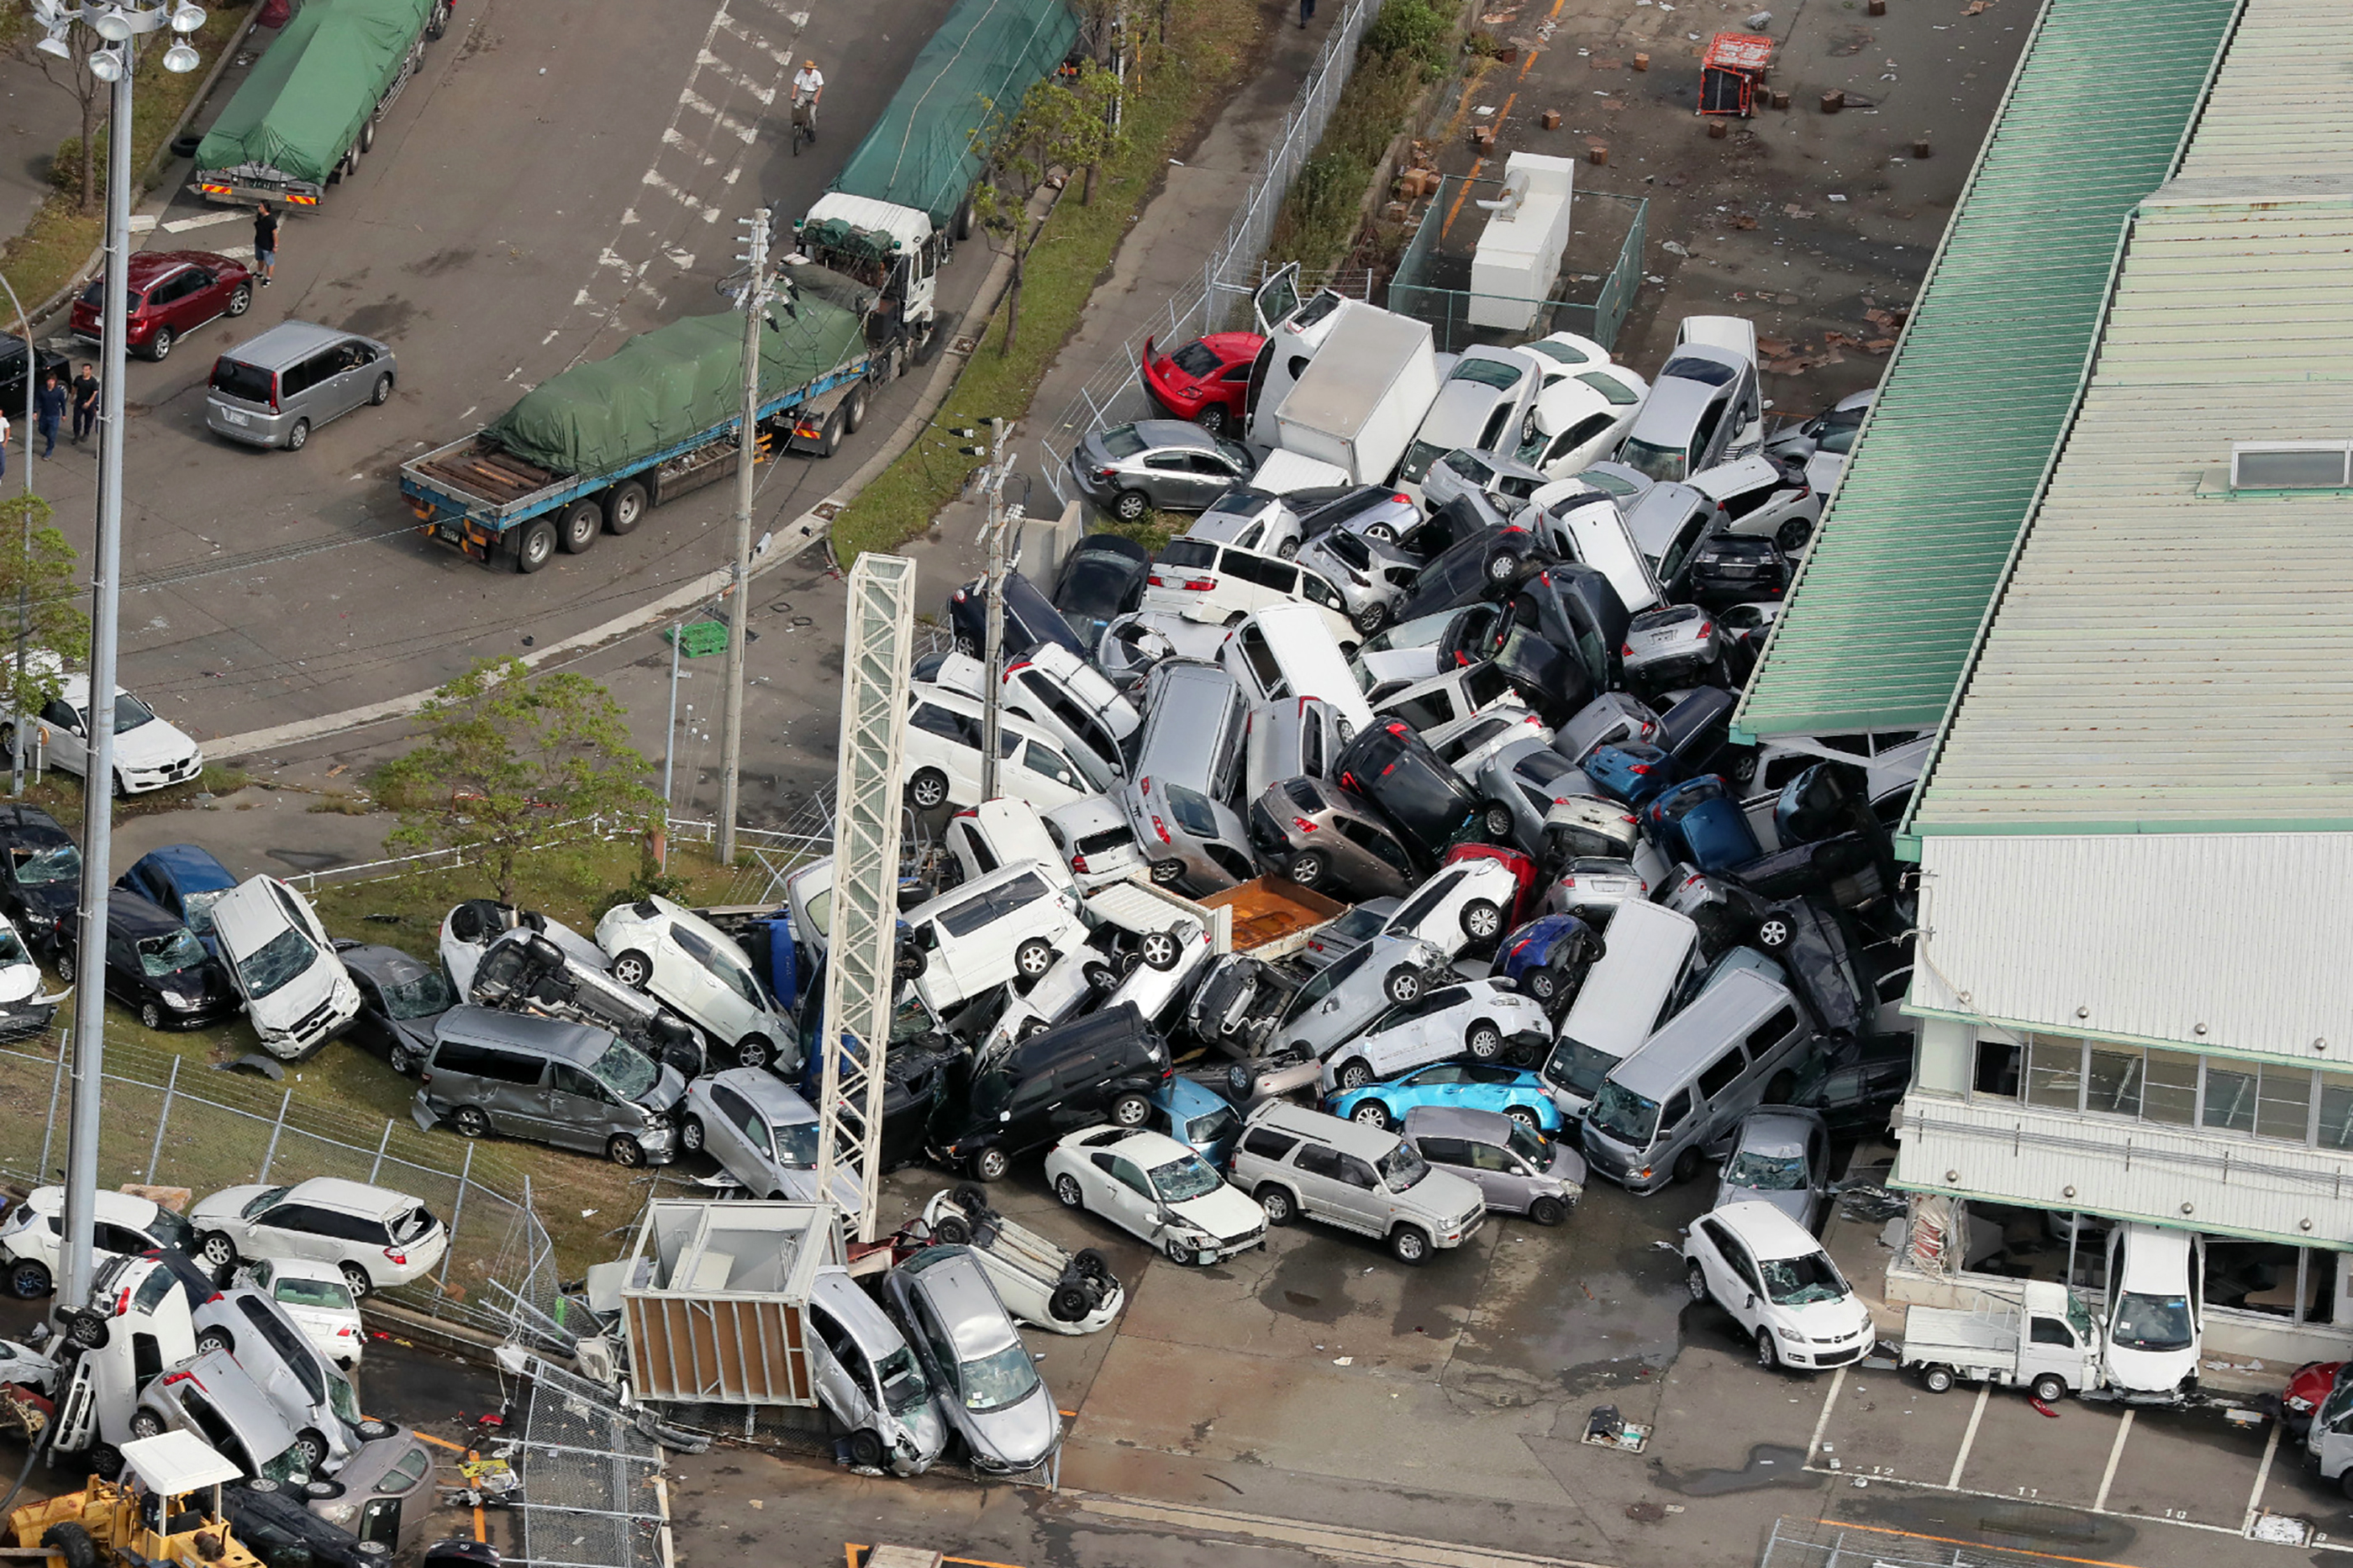 Vehicles piled in a heap due to strong winds in Kobe, Hyogo prefecture, Japan on Sept. 5, 2018, after typhoon Jebi hit the west coast of Japan.